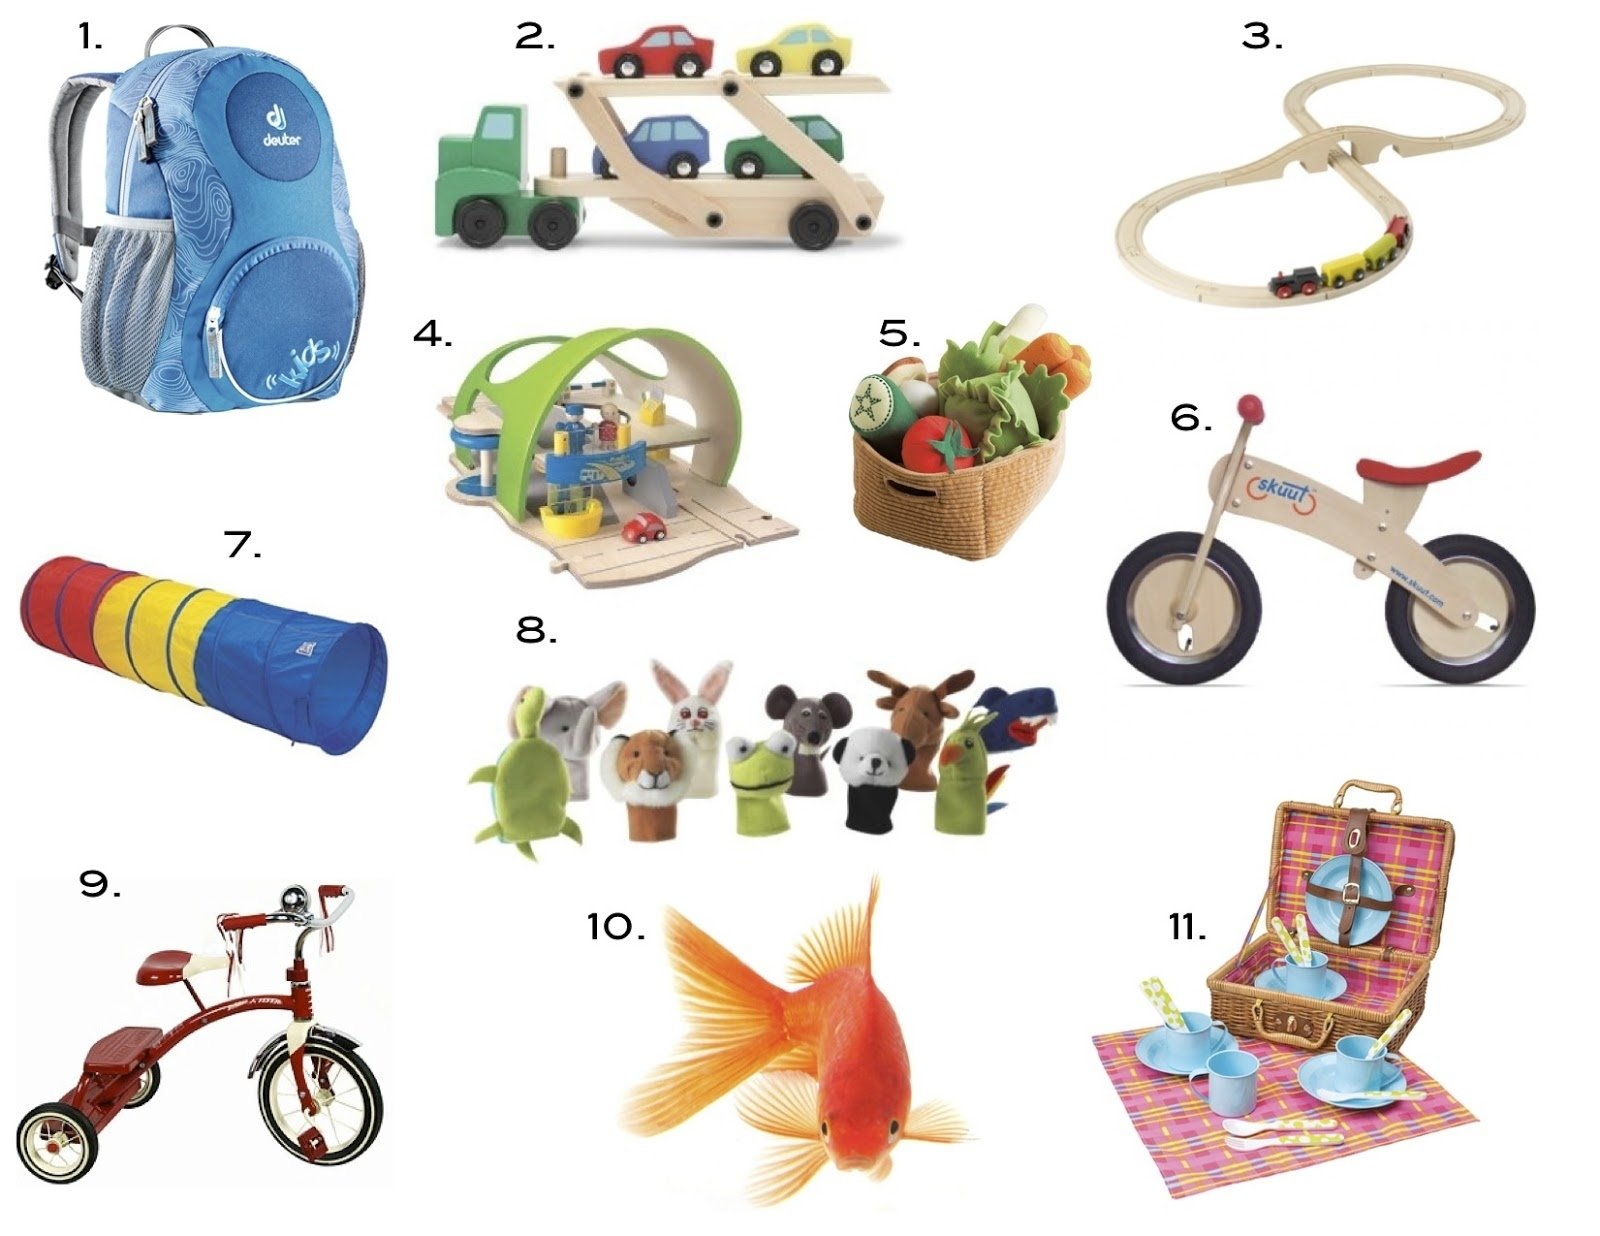 10 Great Gift Ideas For A Two Year Old Boy chris and sonja the sweet seattle life birthday ideas for a two 10 2020